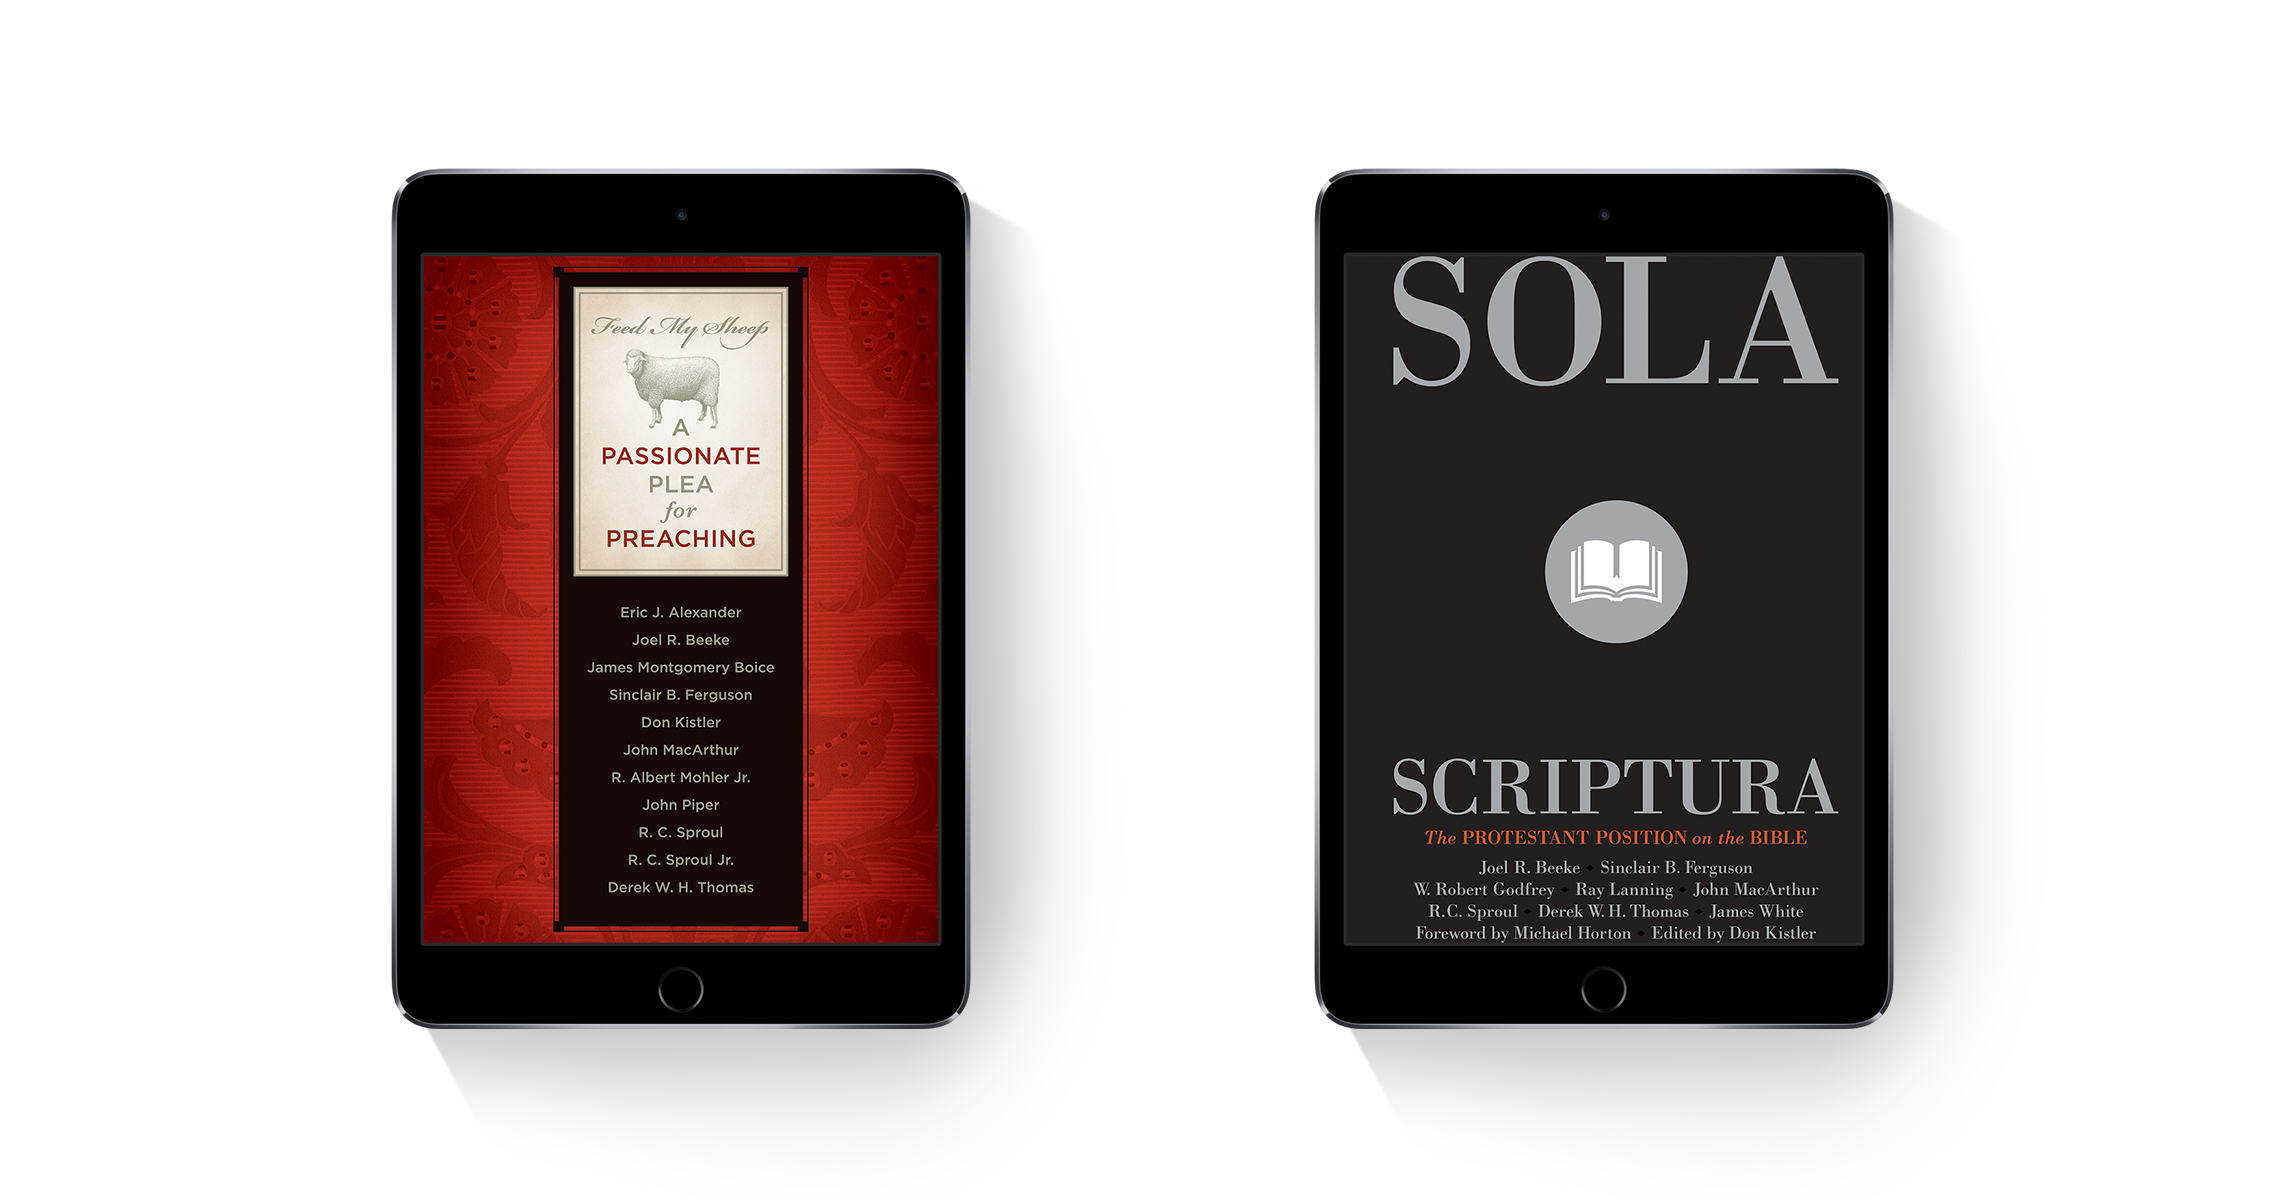 Sola Scriptura: The Protestant Position on the Bible